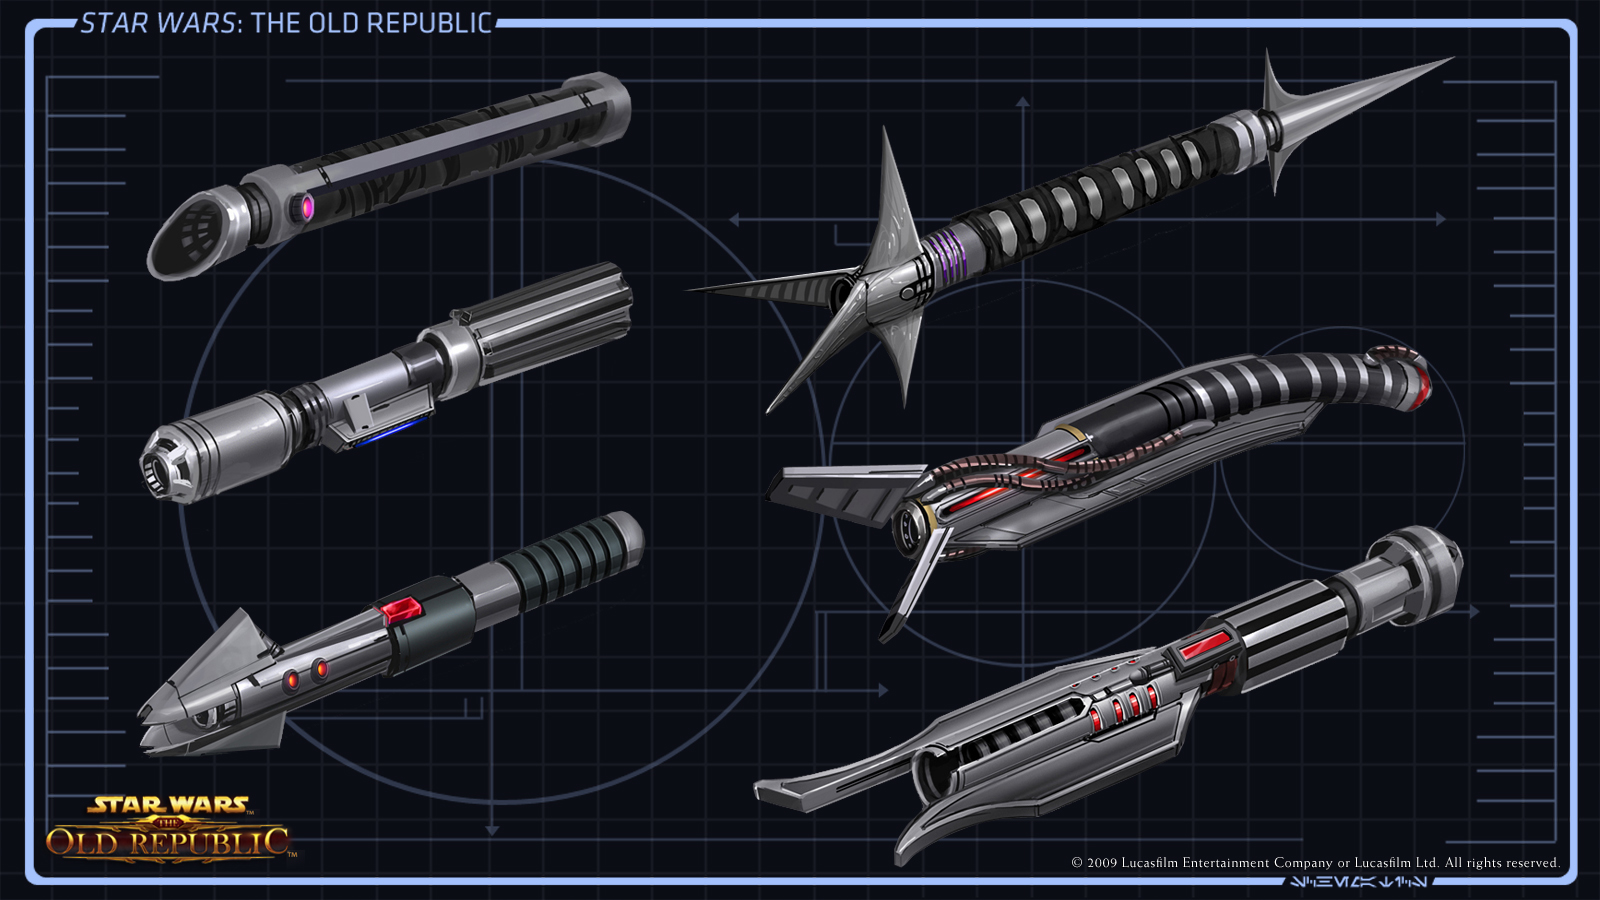 SWTOR Face Star Wars the Old Republic related news: SWTOR Class